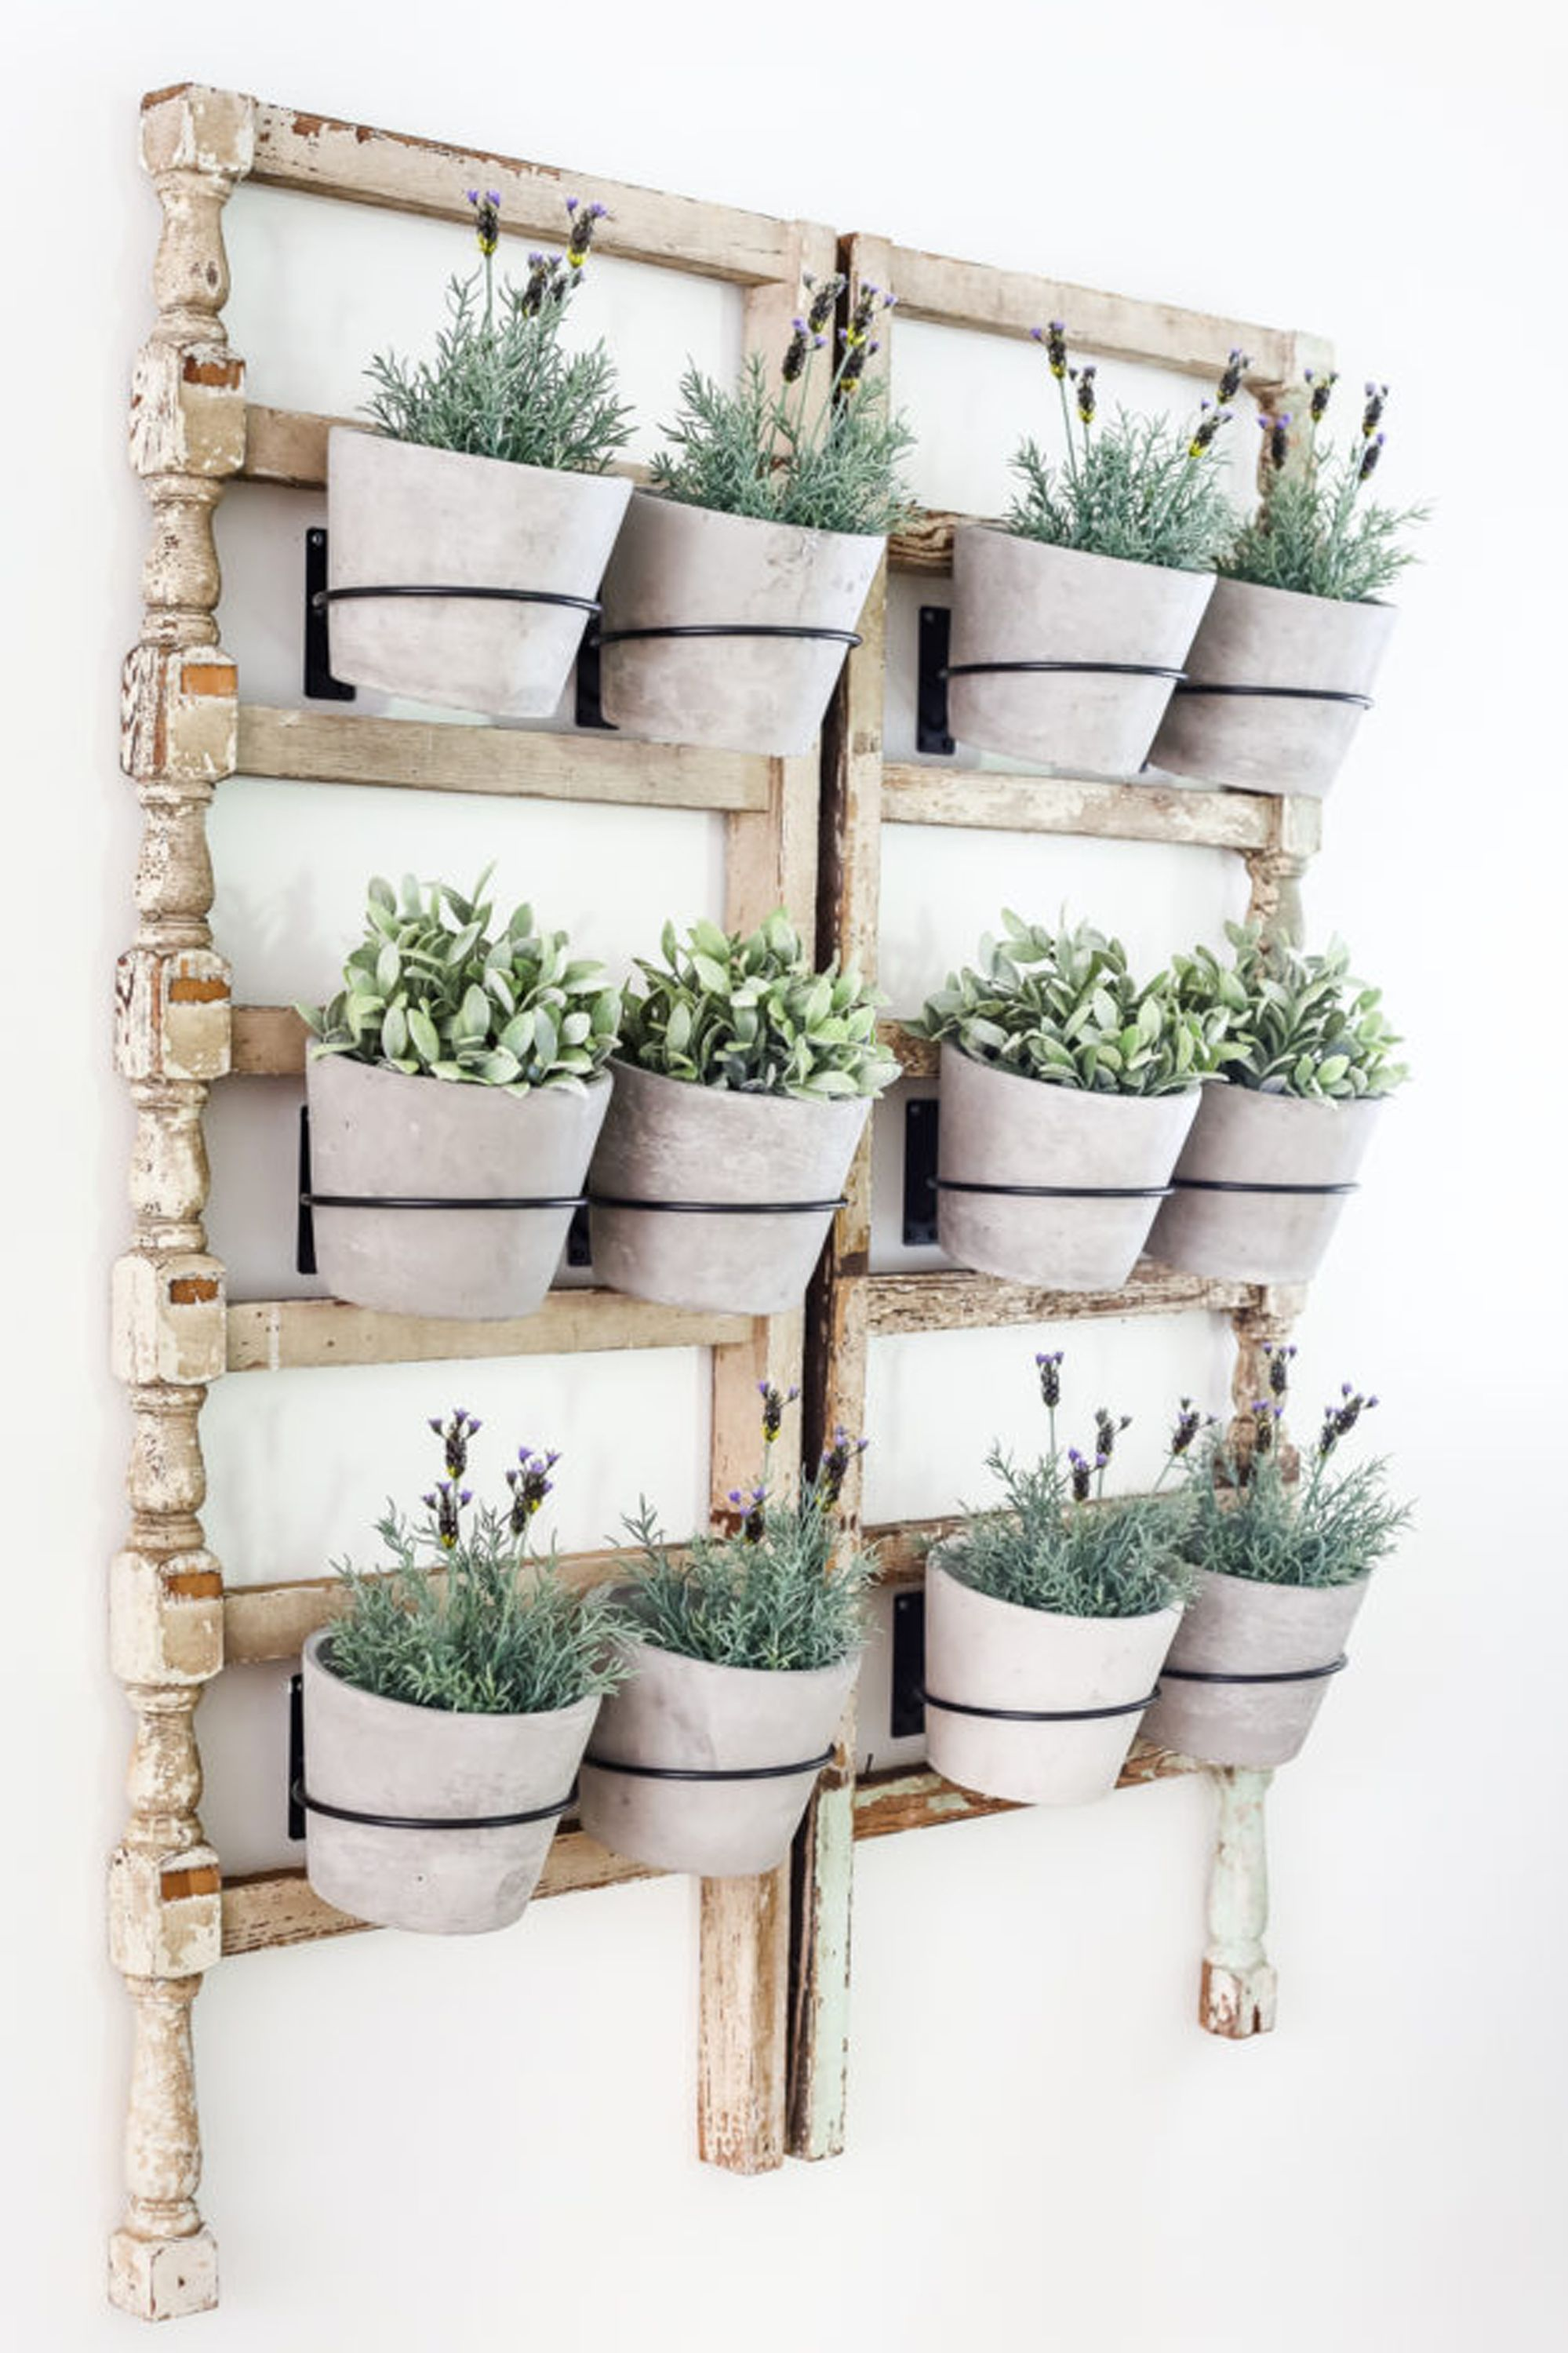 16 Container Gardening Ideas - Potted Plant Ideas We on house plant poles, house plant trays, house plant containers, house plant watering devices, house plant holders, house plant stakes, house plant shelving, house plant supports, house plant stands, house plant hangers,